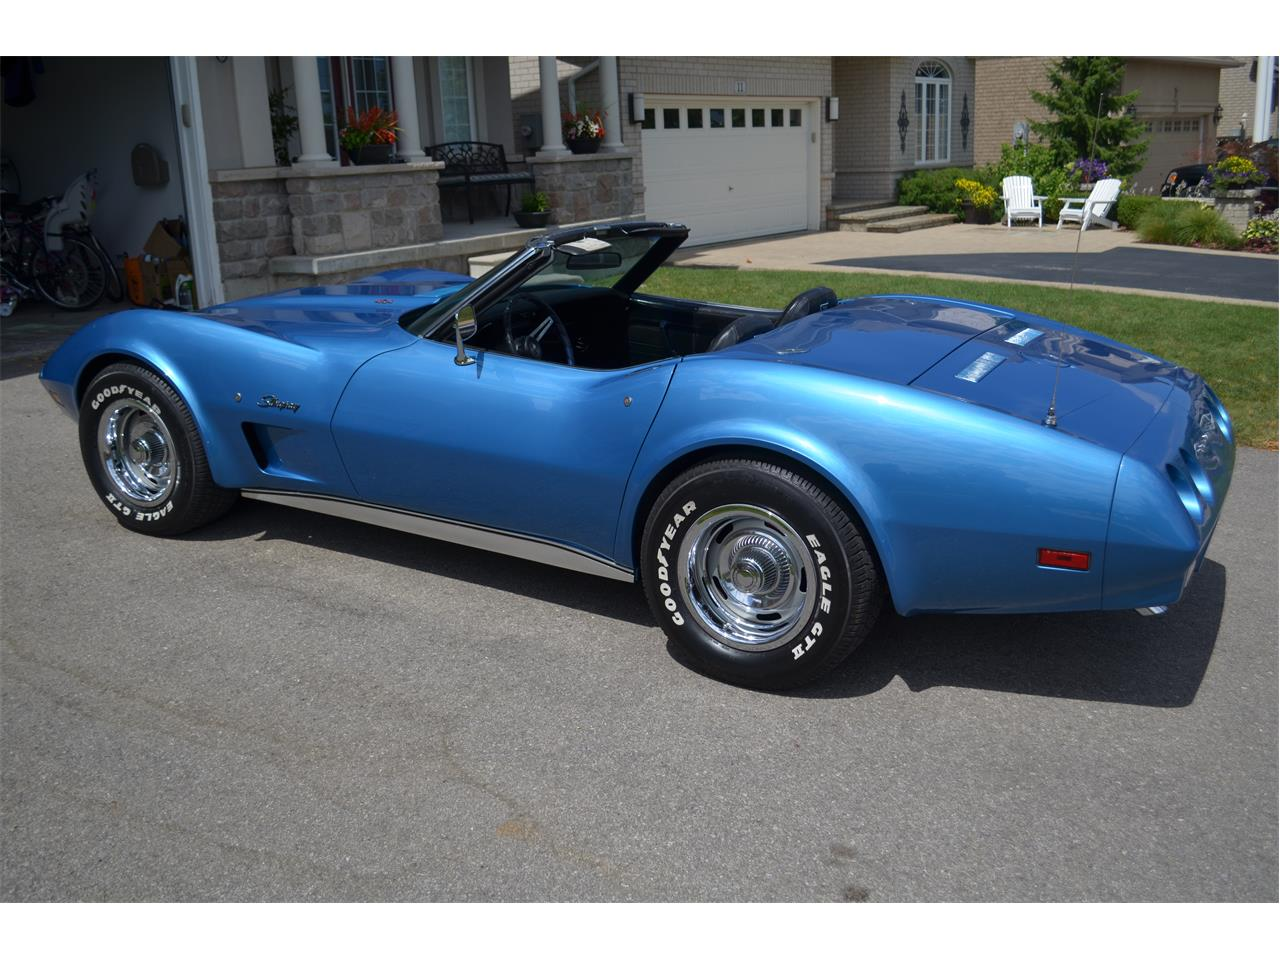 Large Picture of 1974 Corvette located in Ontario - $21,500.00 Offered by a Private Seller - F75E